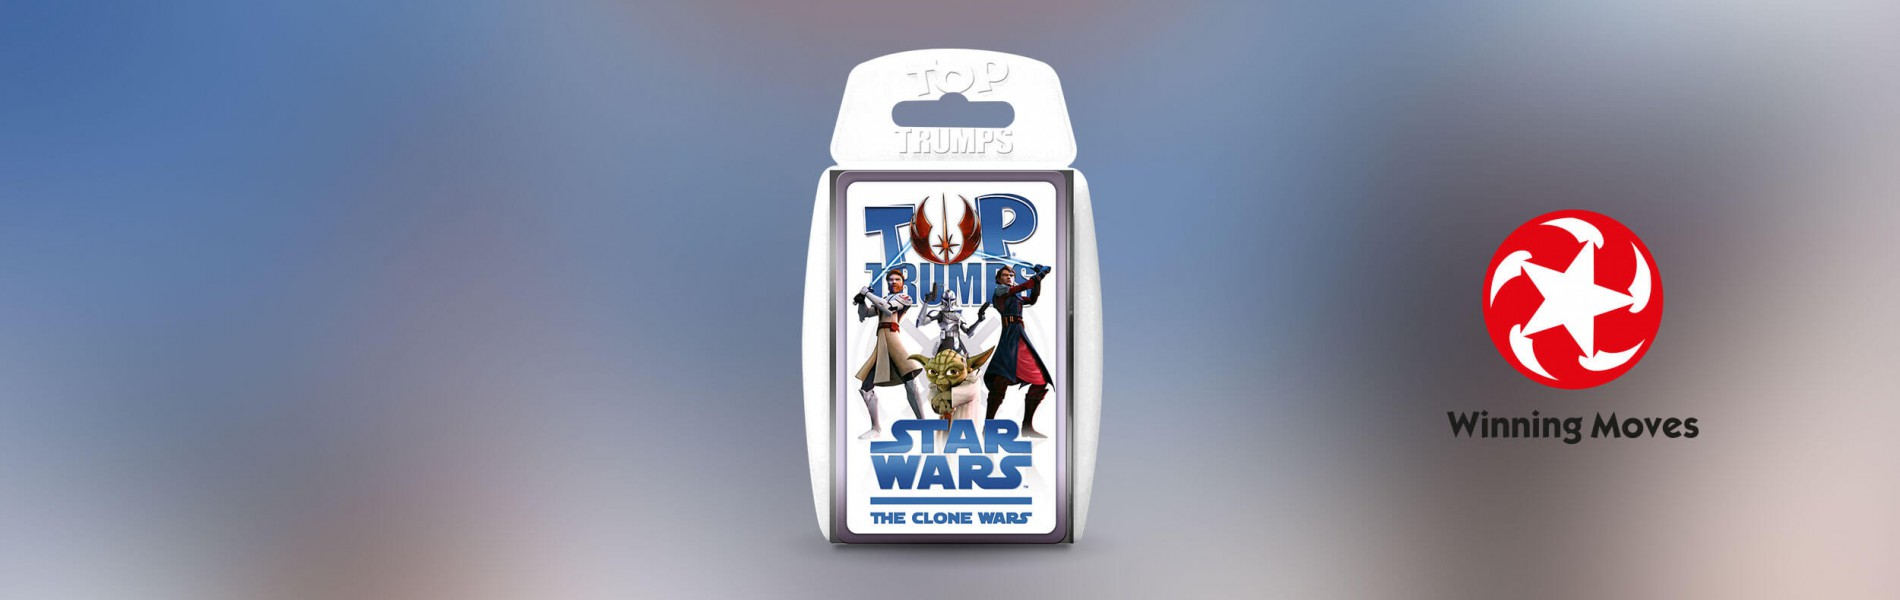 Top Trumps Star Wars The Clone Wars